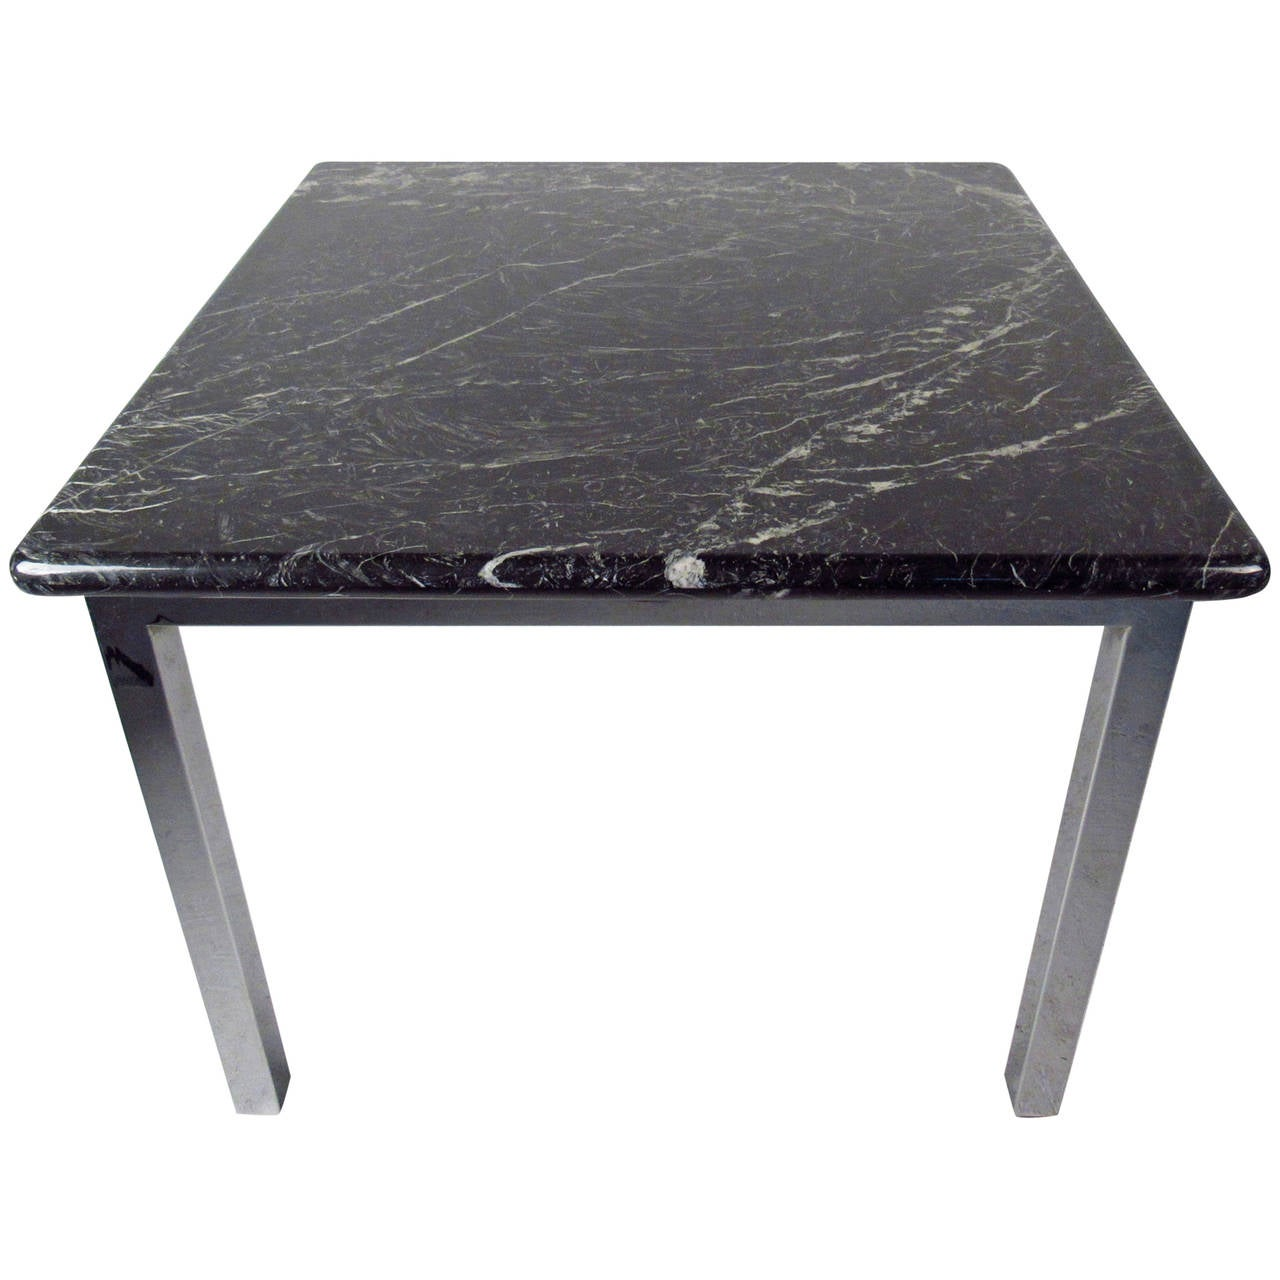 Mid century modern marble and chrome table at 1stdibs for Modern marble dining table